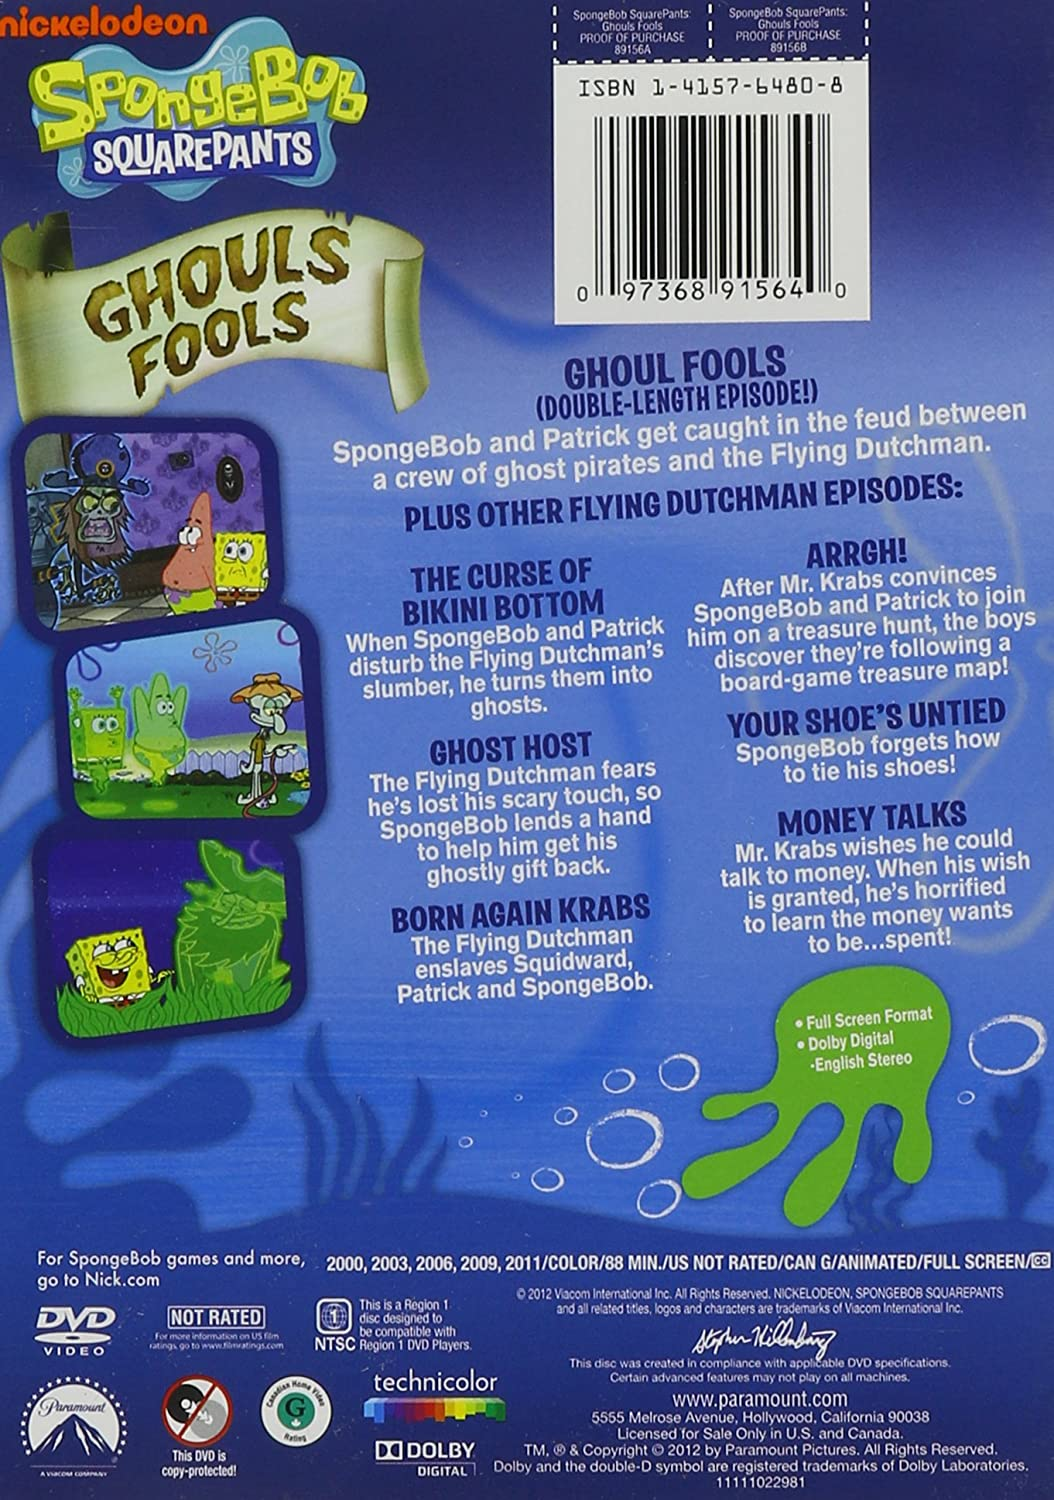 amazon com spongebob squarepants ghouls fools spongebob